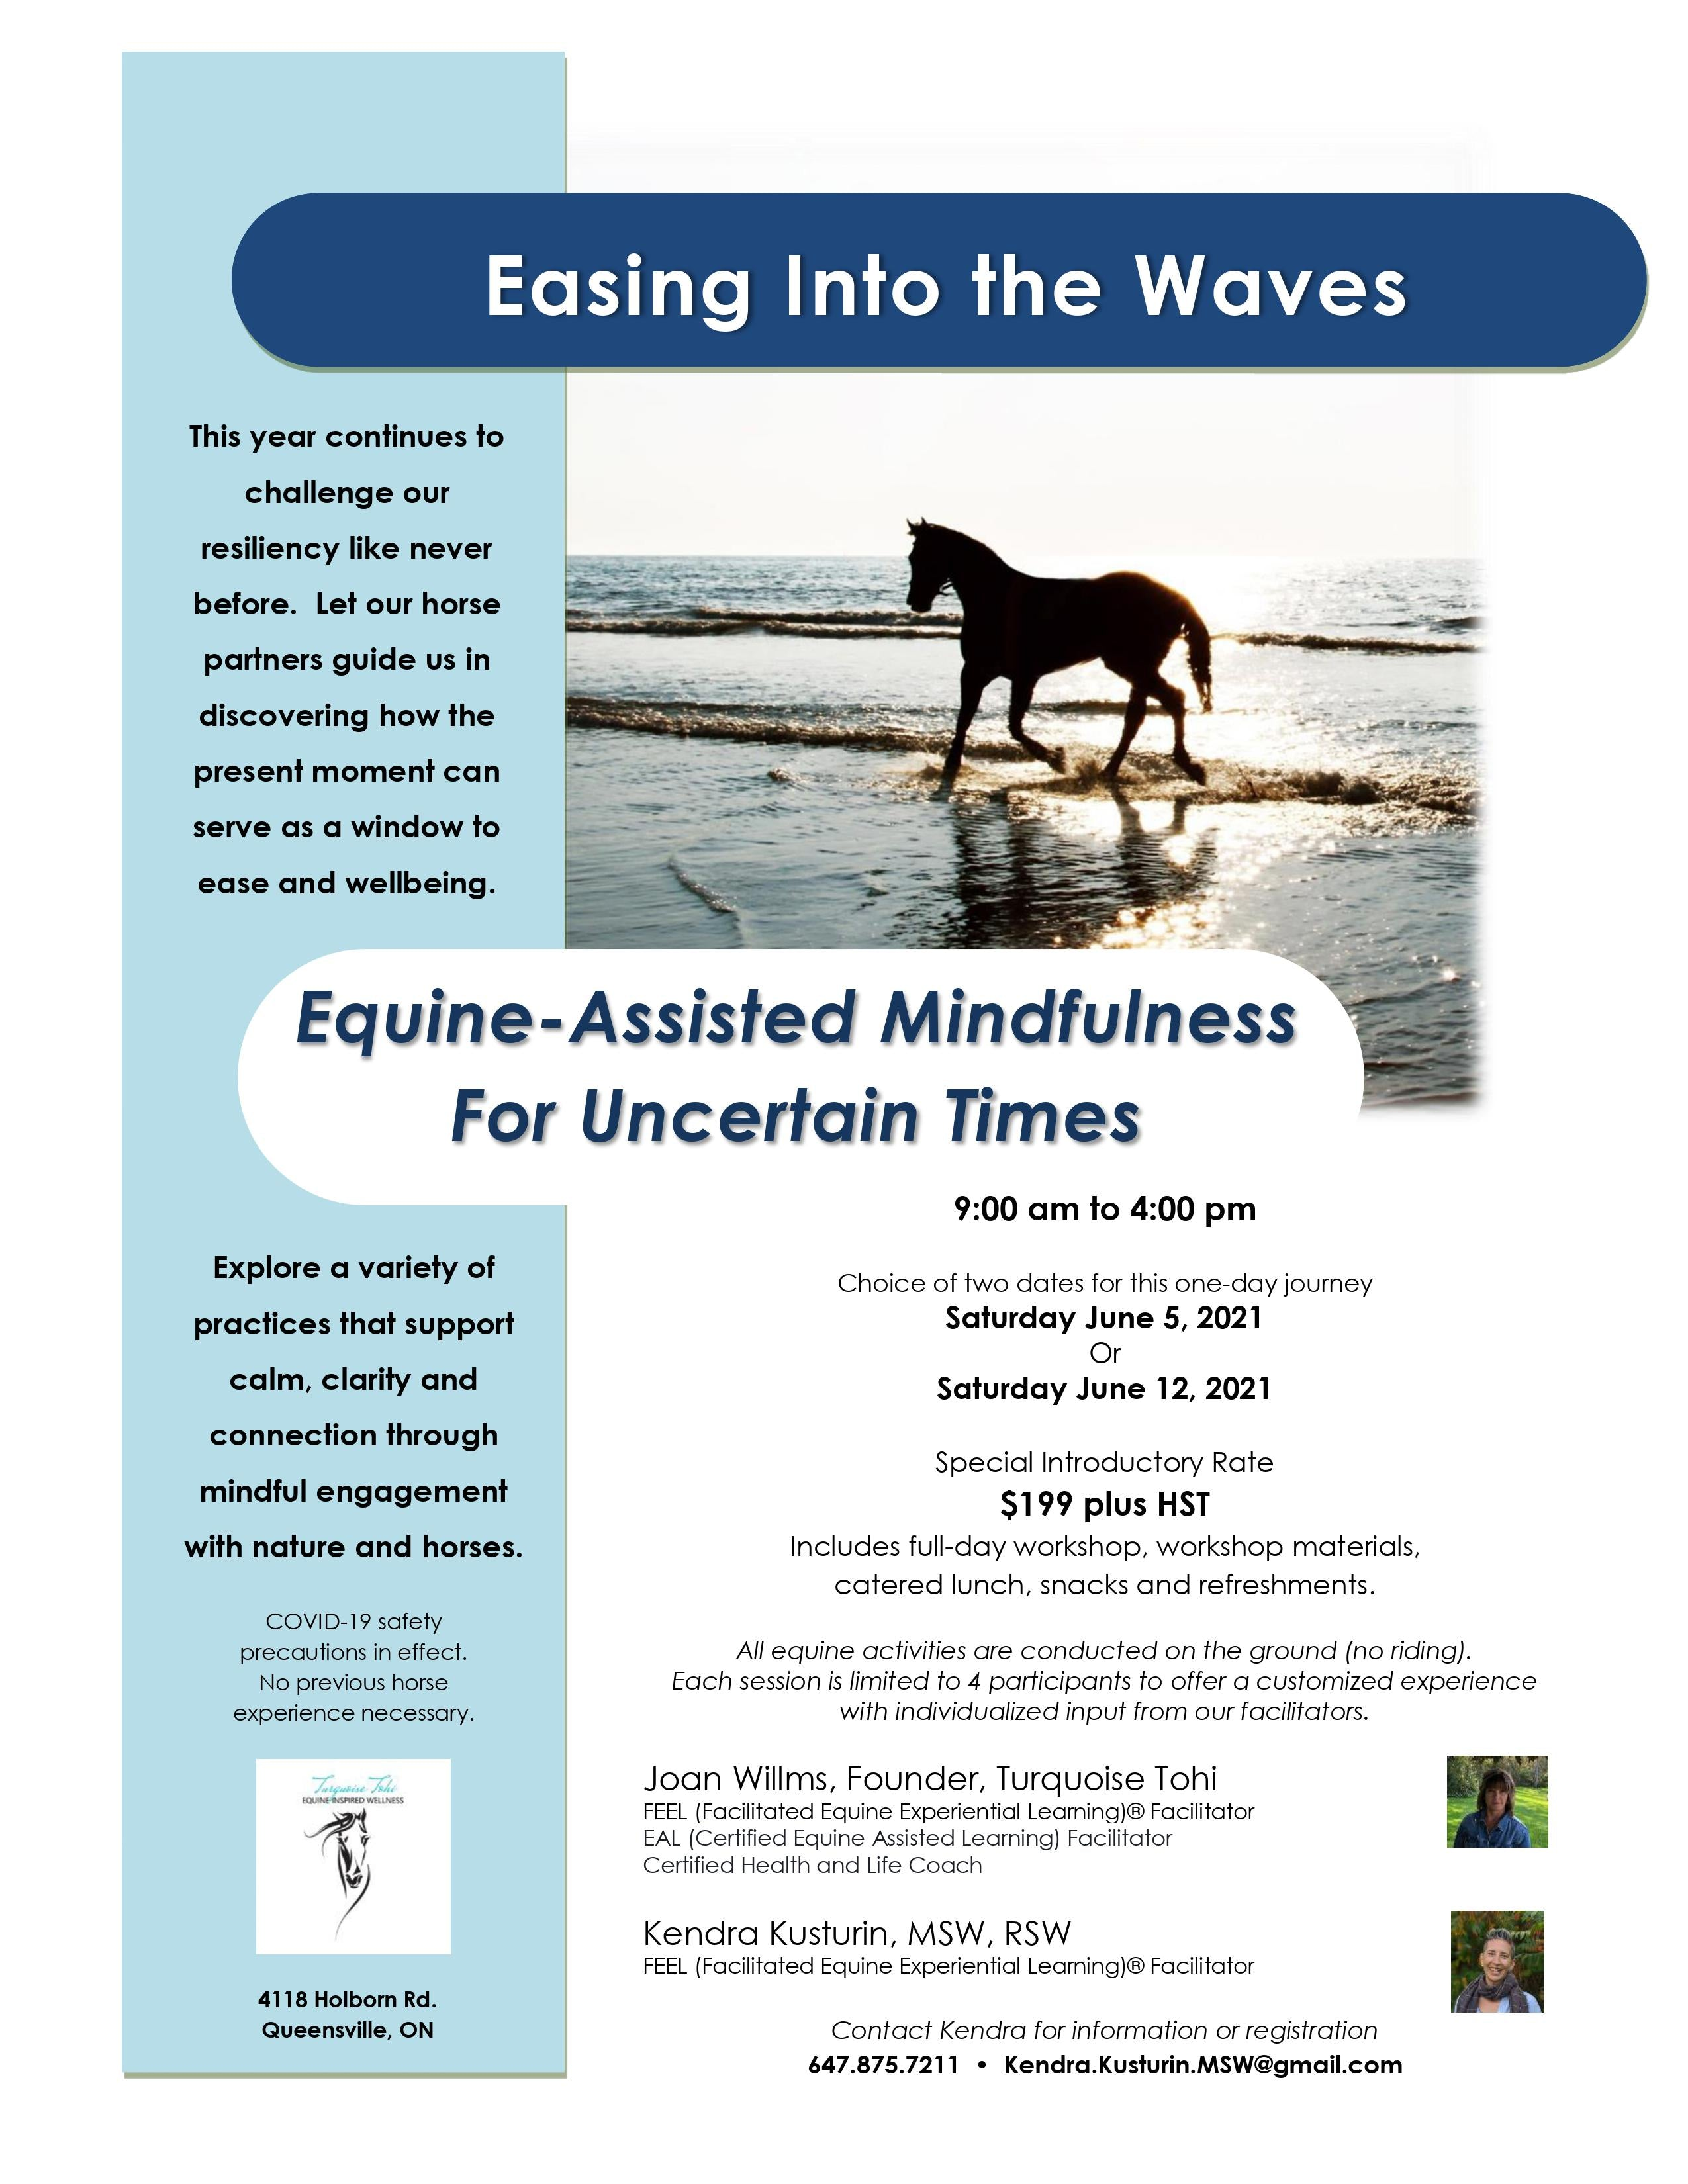 Easing Into The Waves Flyer